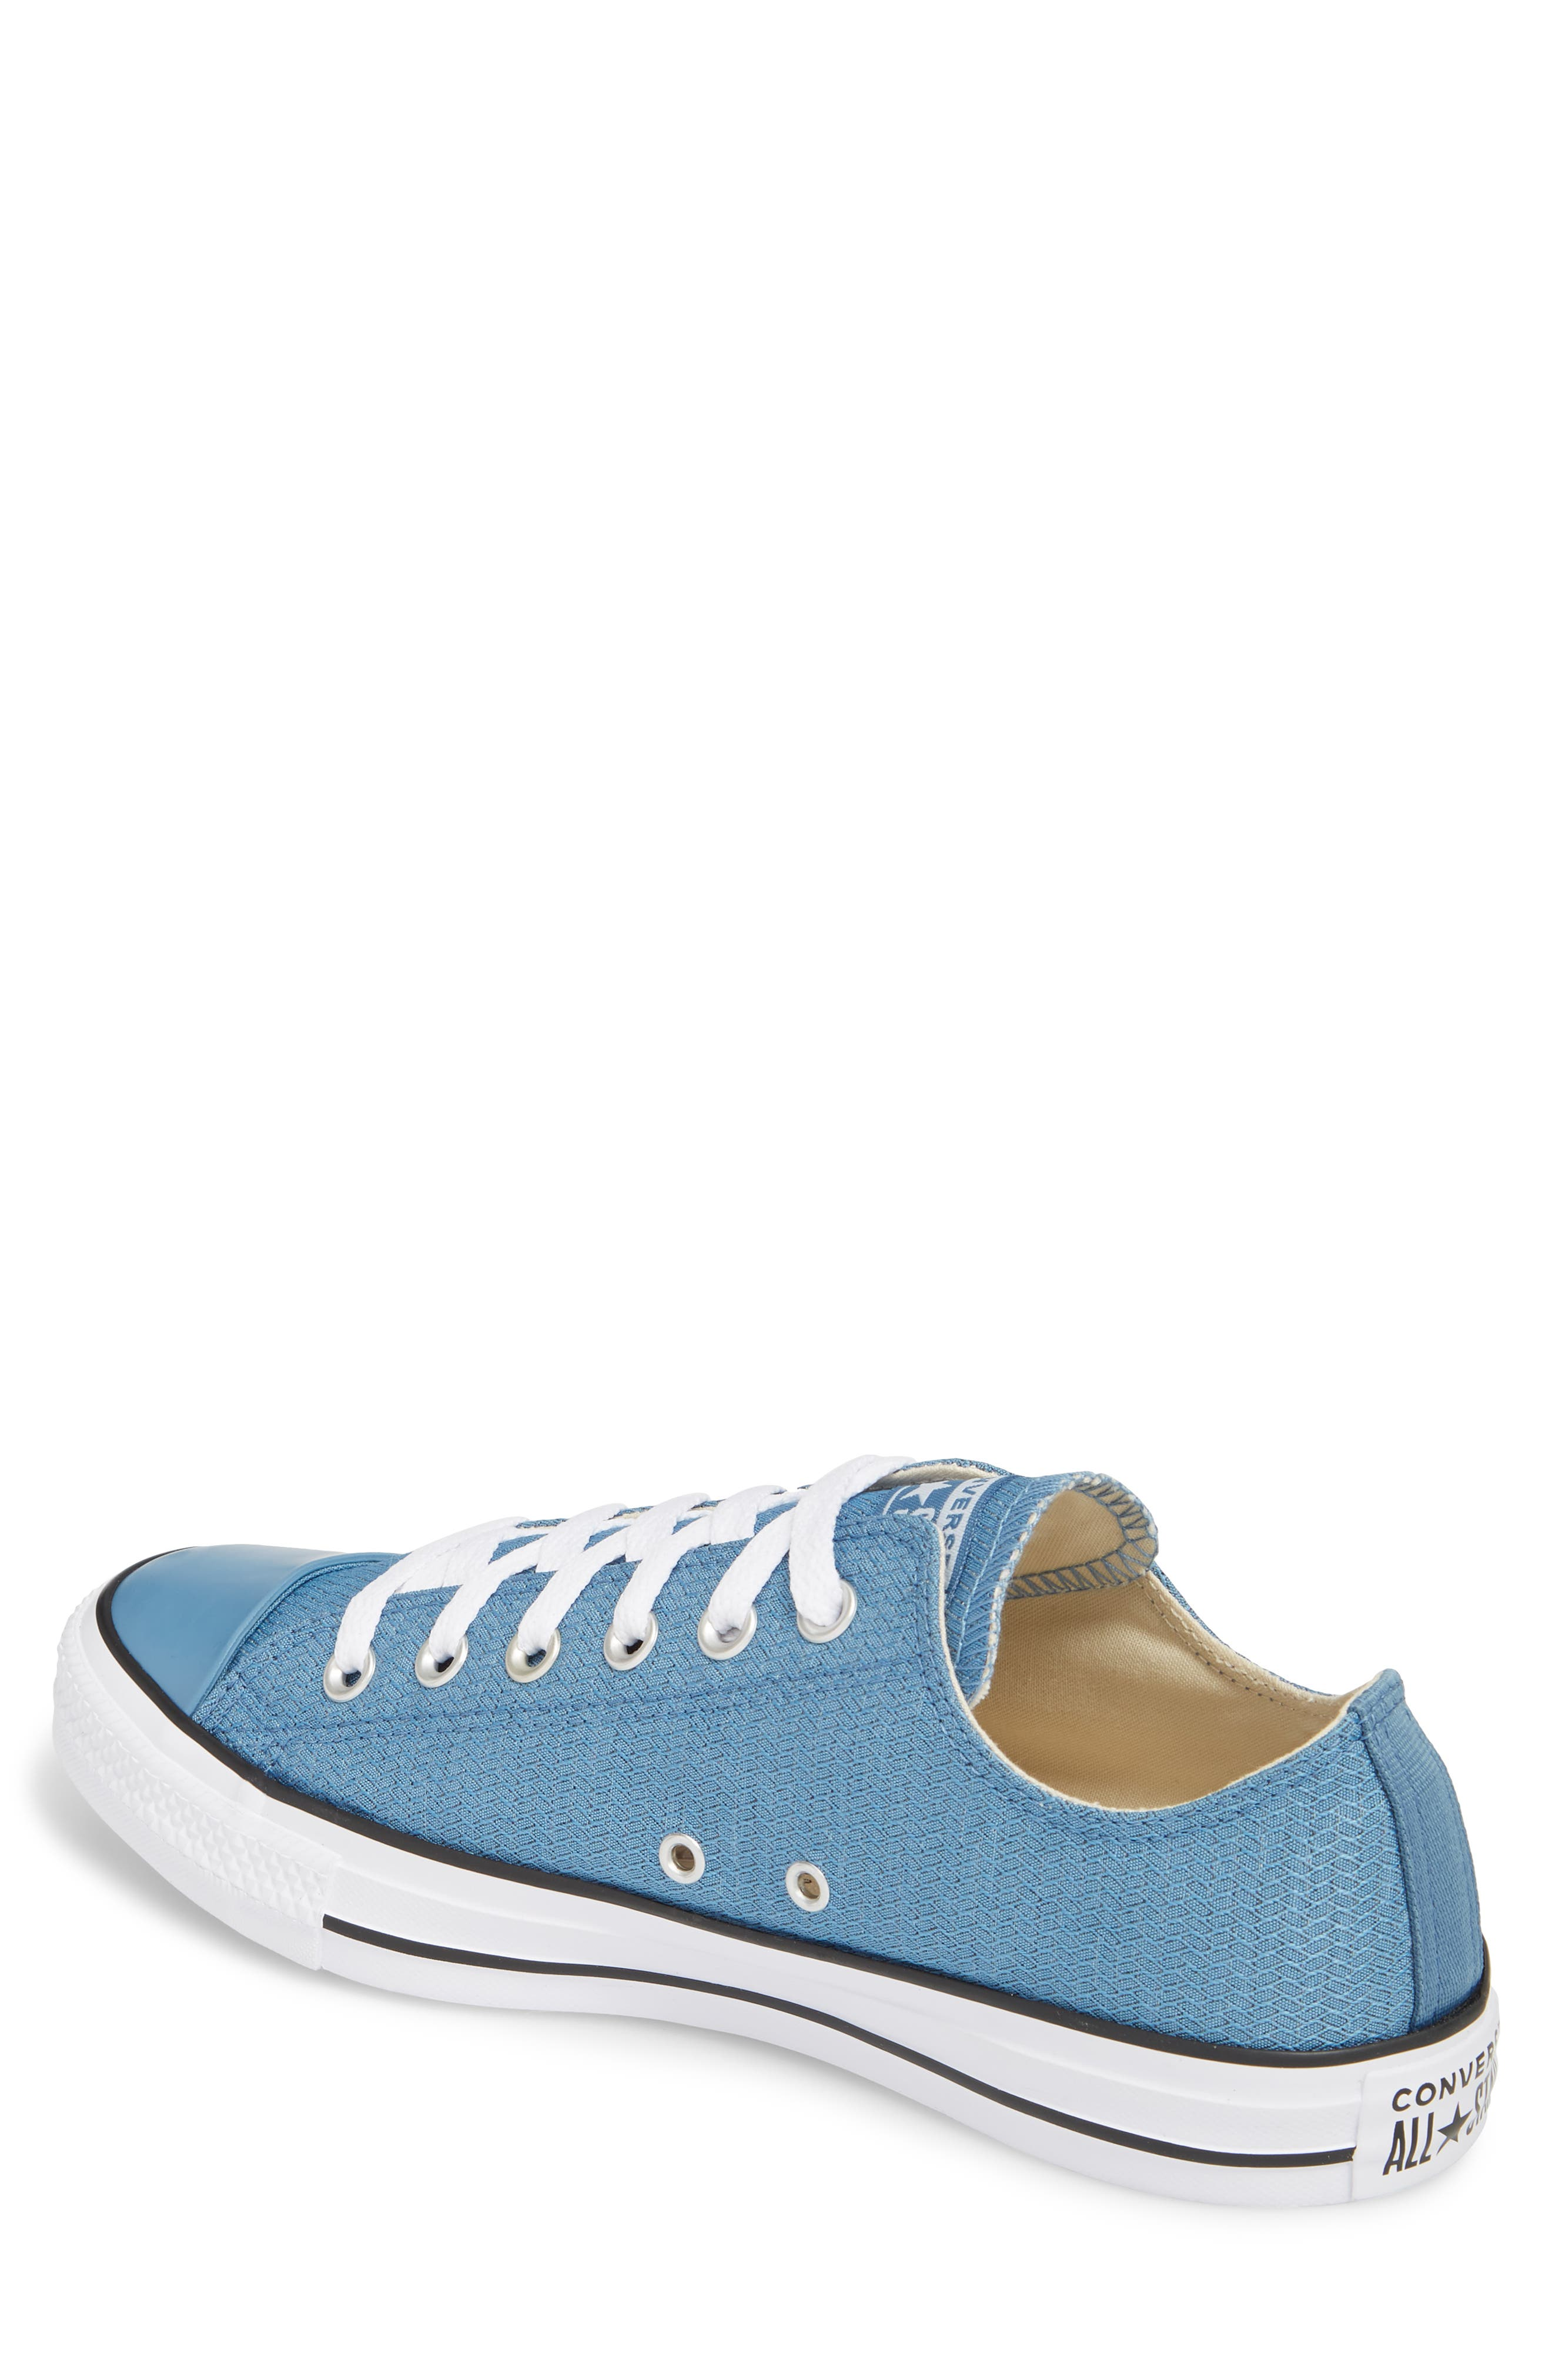 All Star<sup>®</sup> Ripstop Low Top Sneaker,                             Alternate thumbnail 4, color,